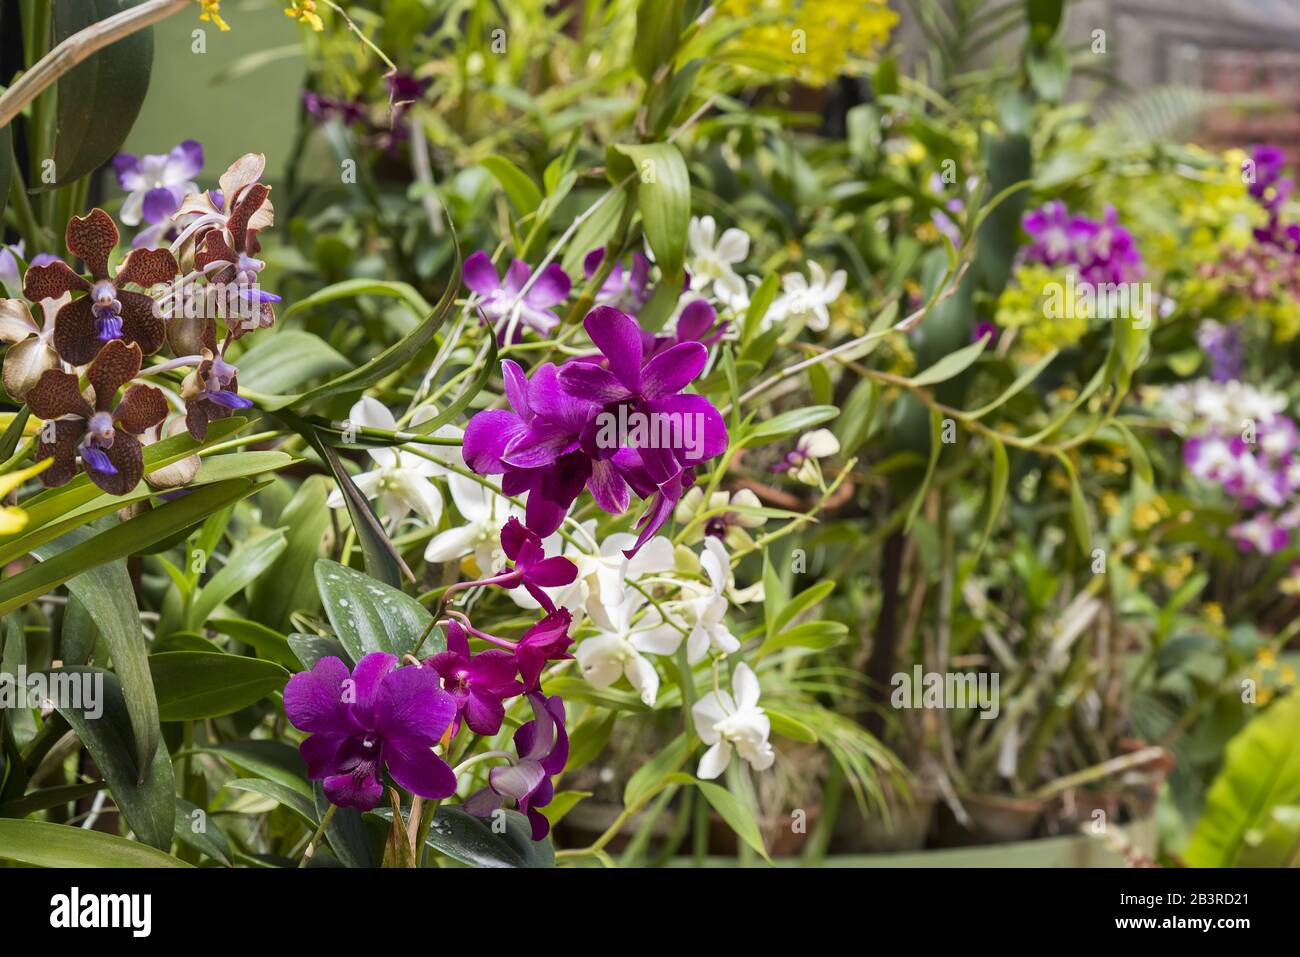 Tropical Flower Sri Lanka High Resolution Stock Photography And Images Alamy